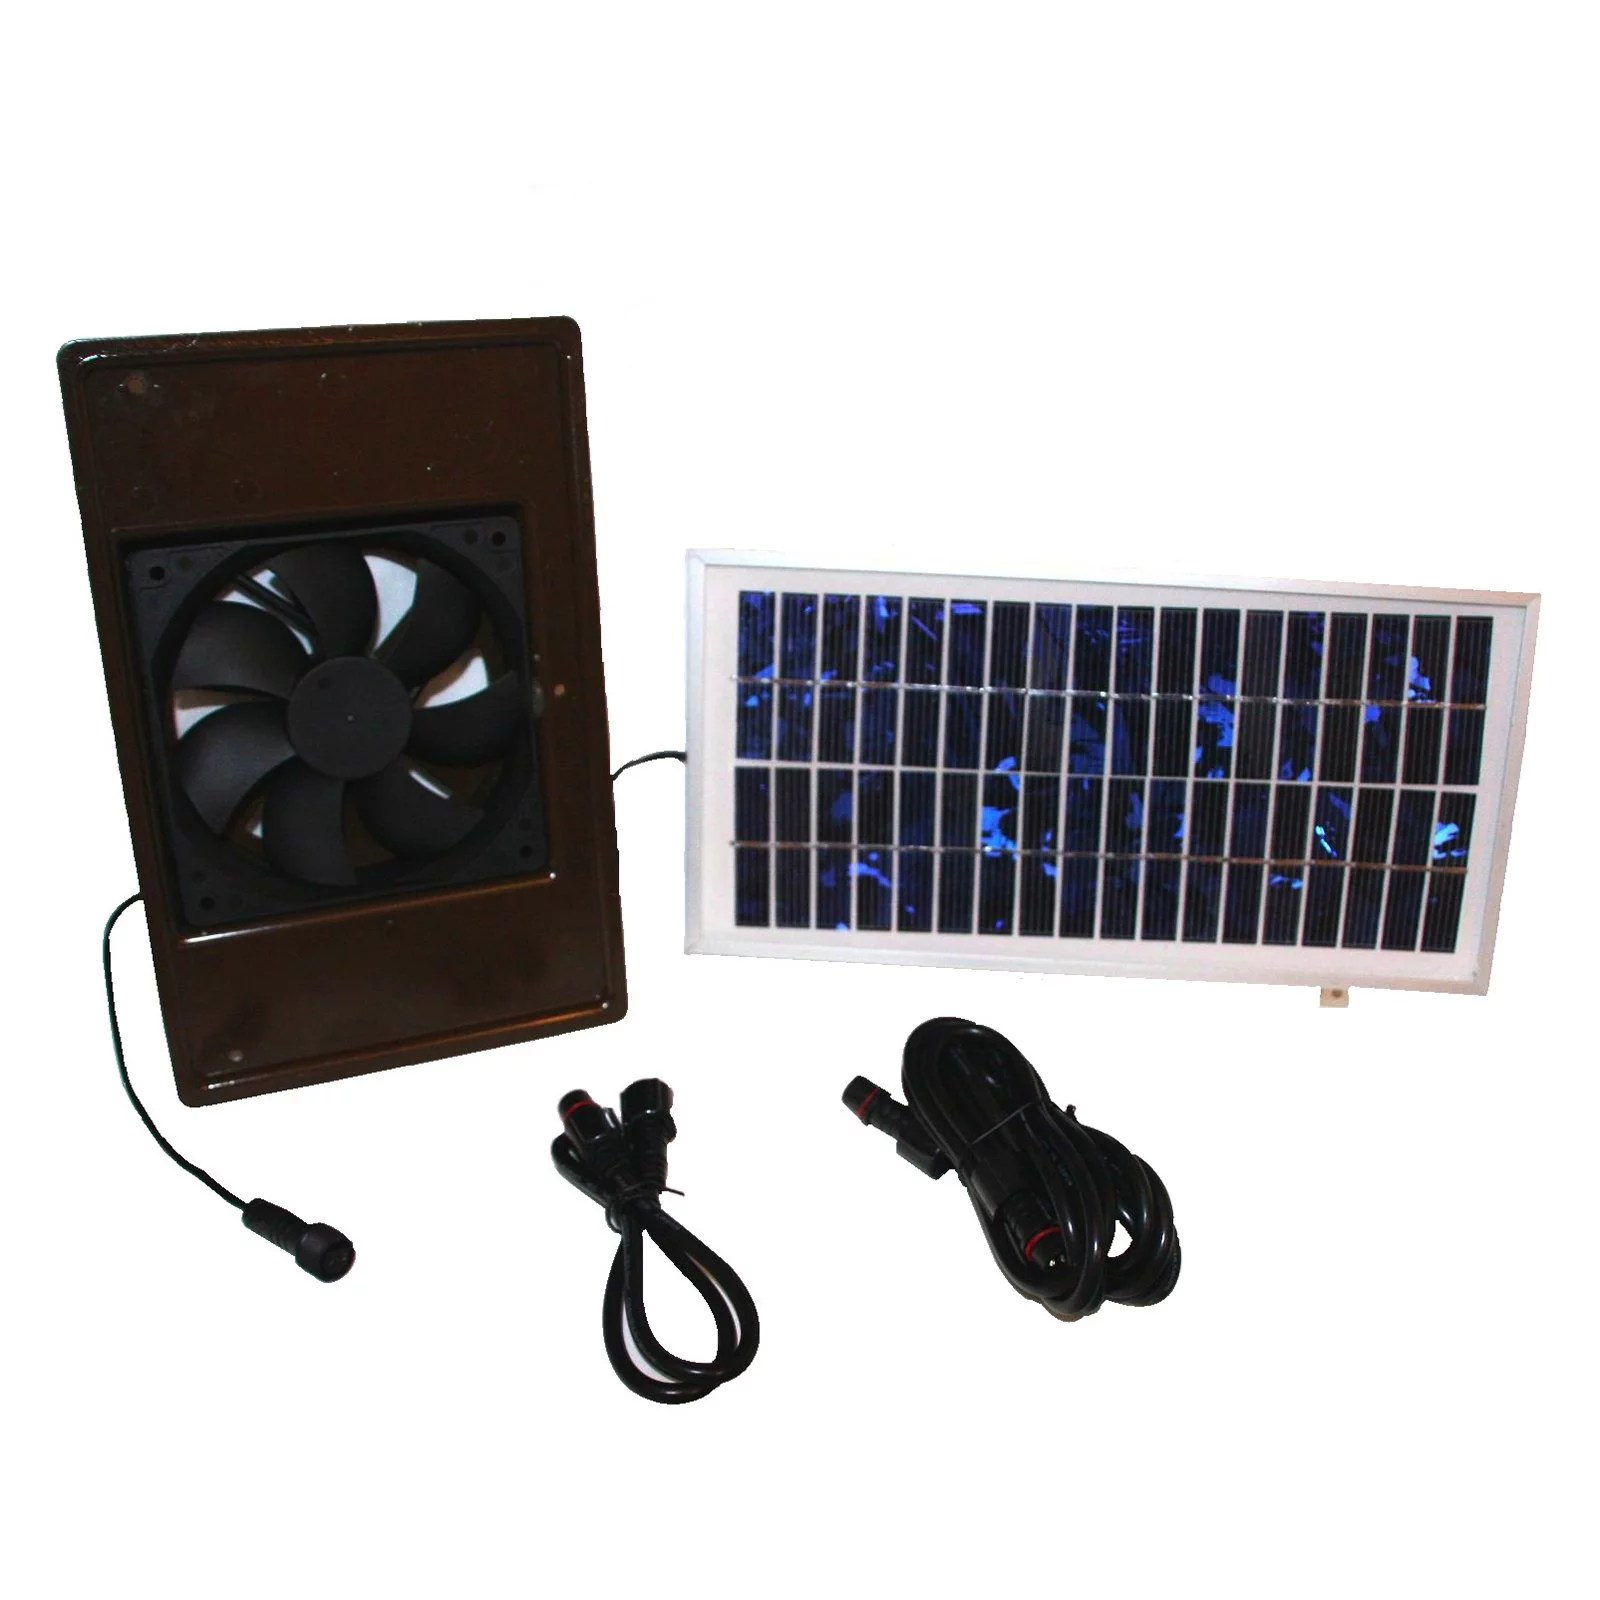 dog palace breeze solar powered exhaust fan for dog house large